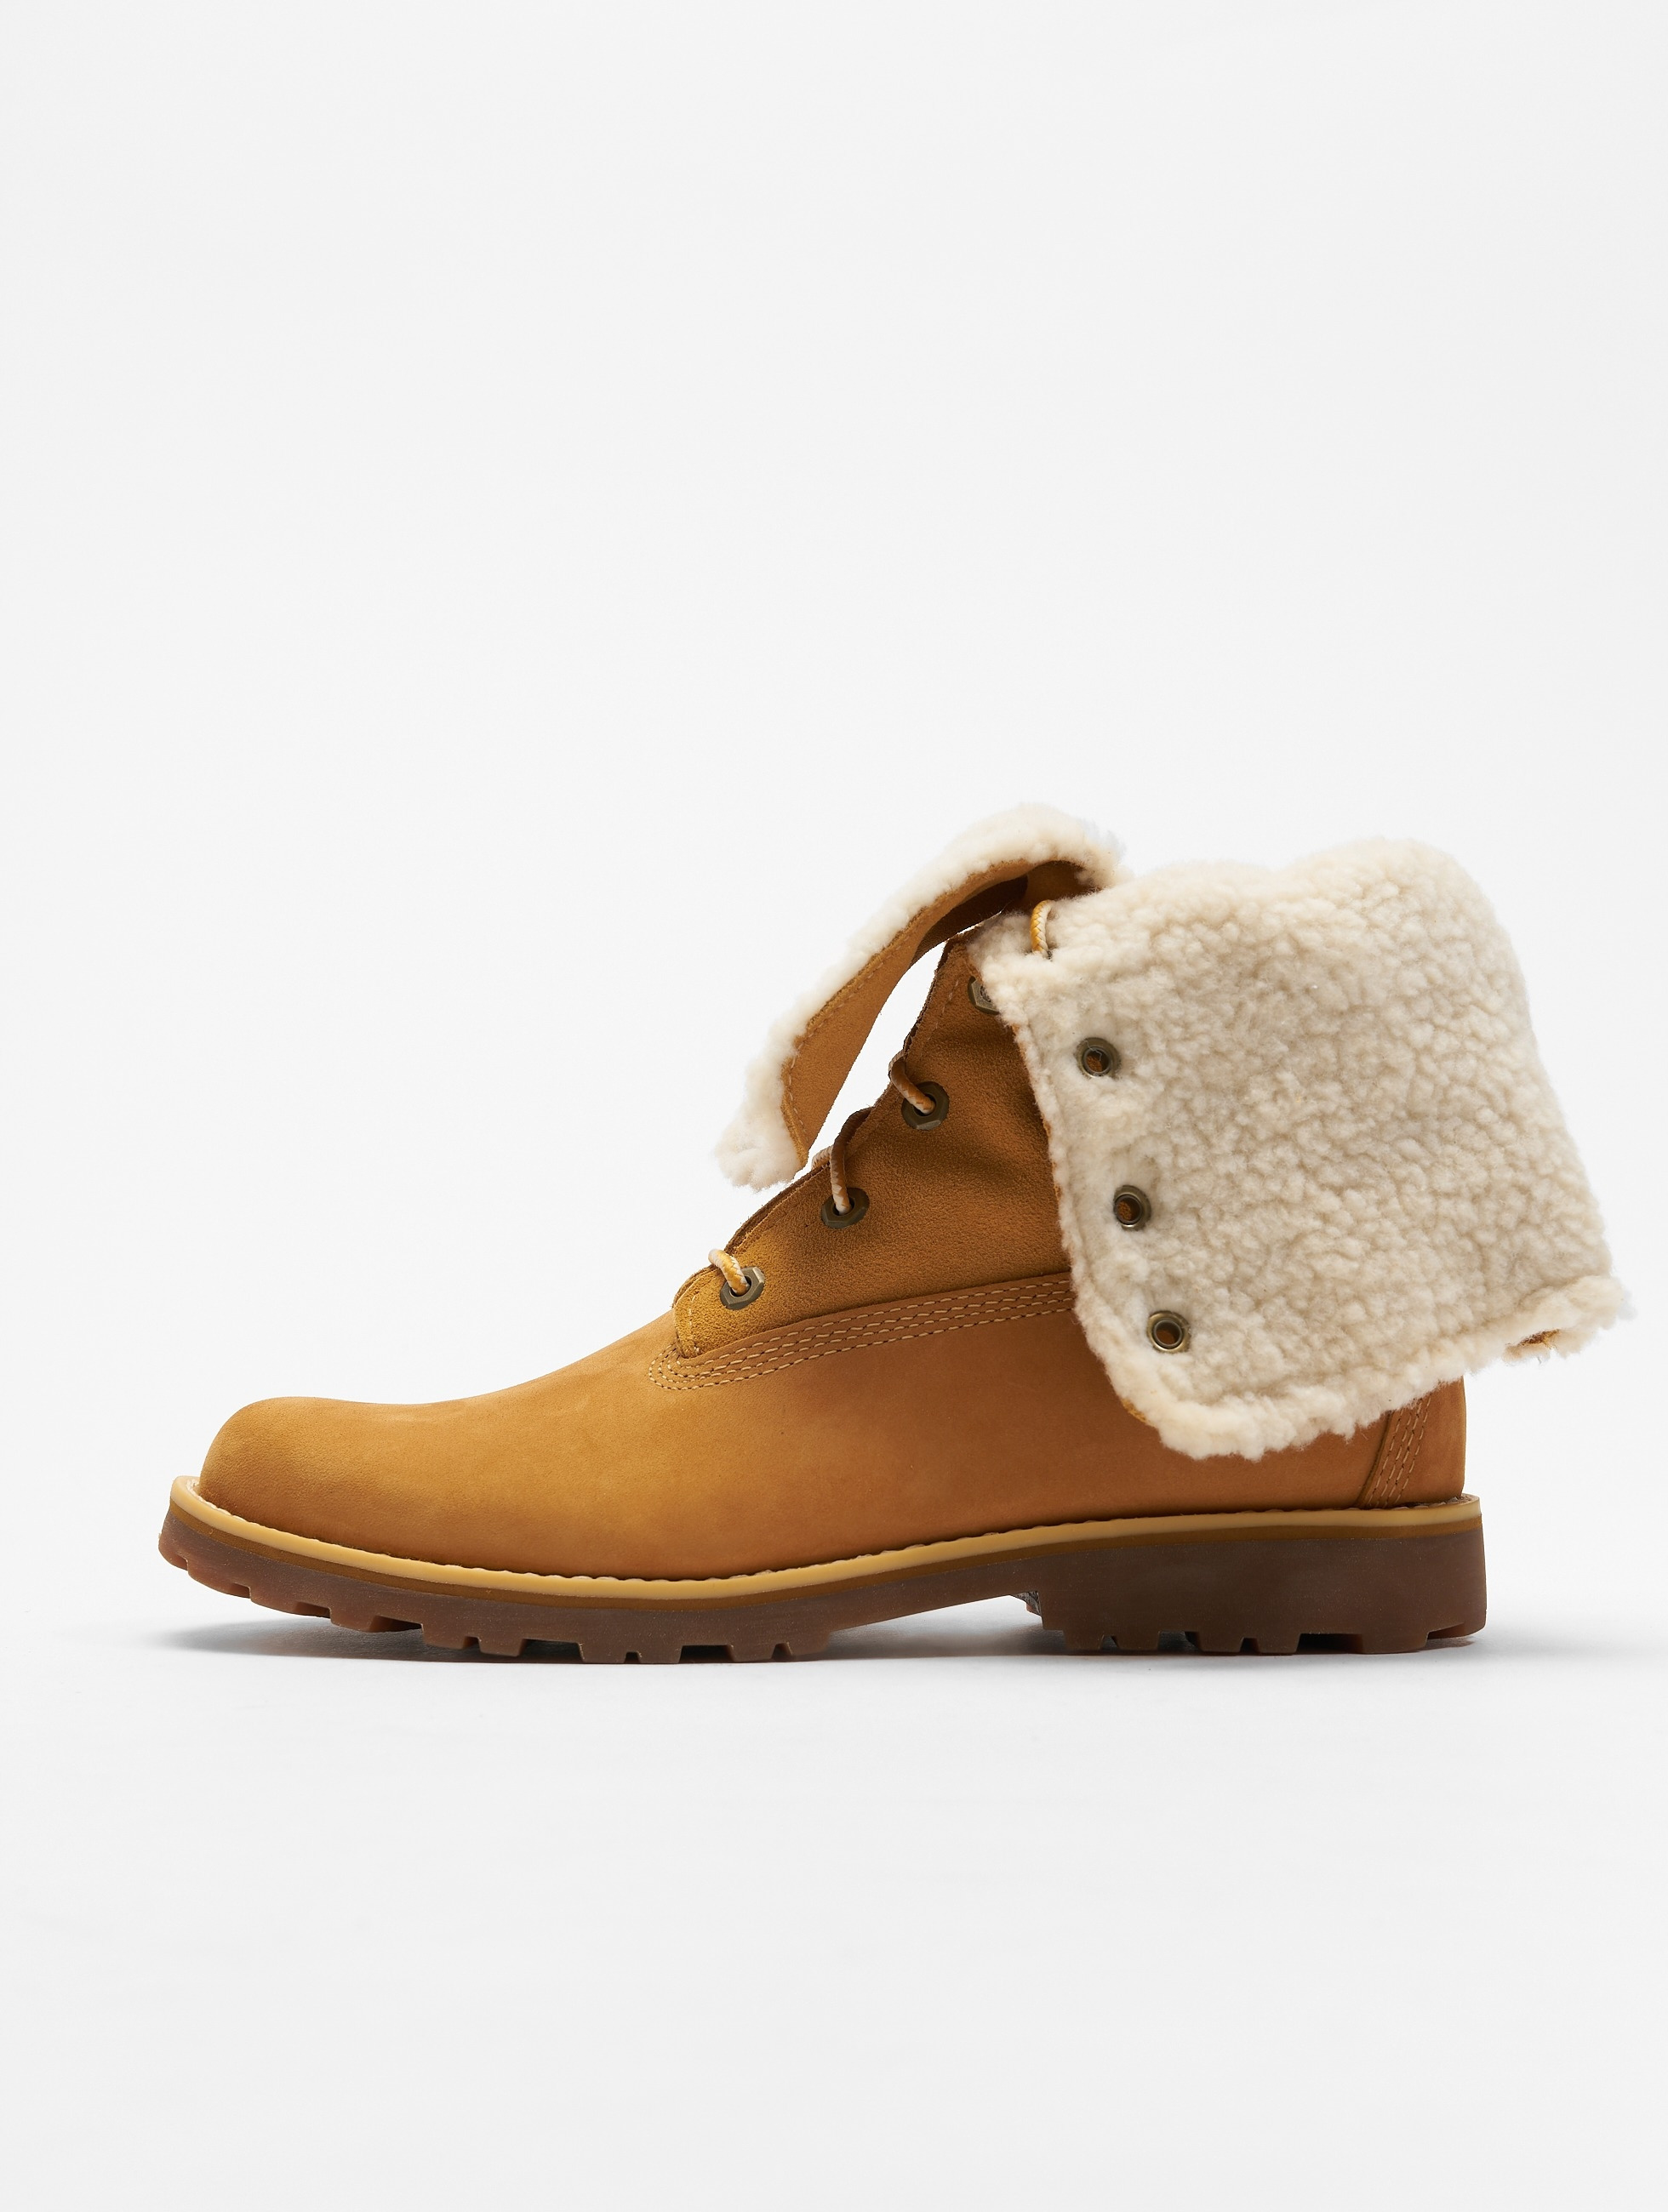 Timberland Chaussures montantes 6 Inch Waterproof Shearling beige